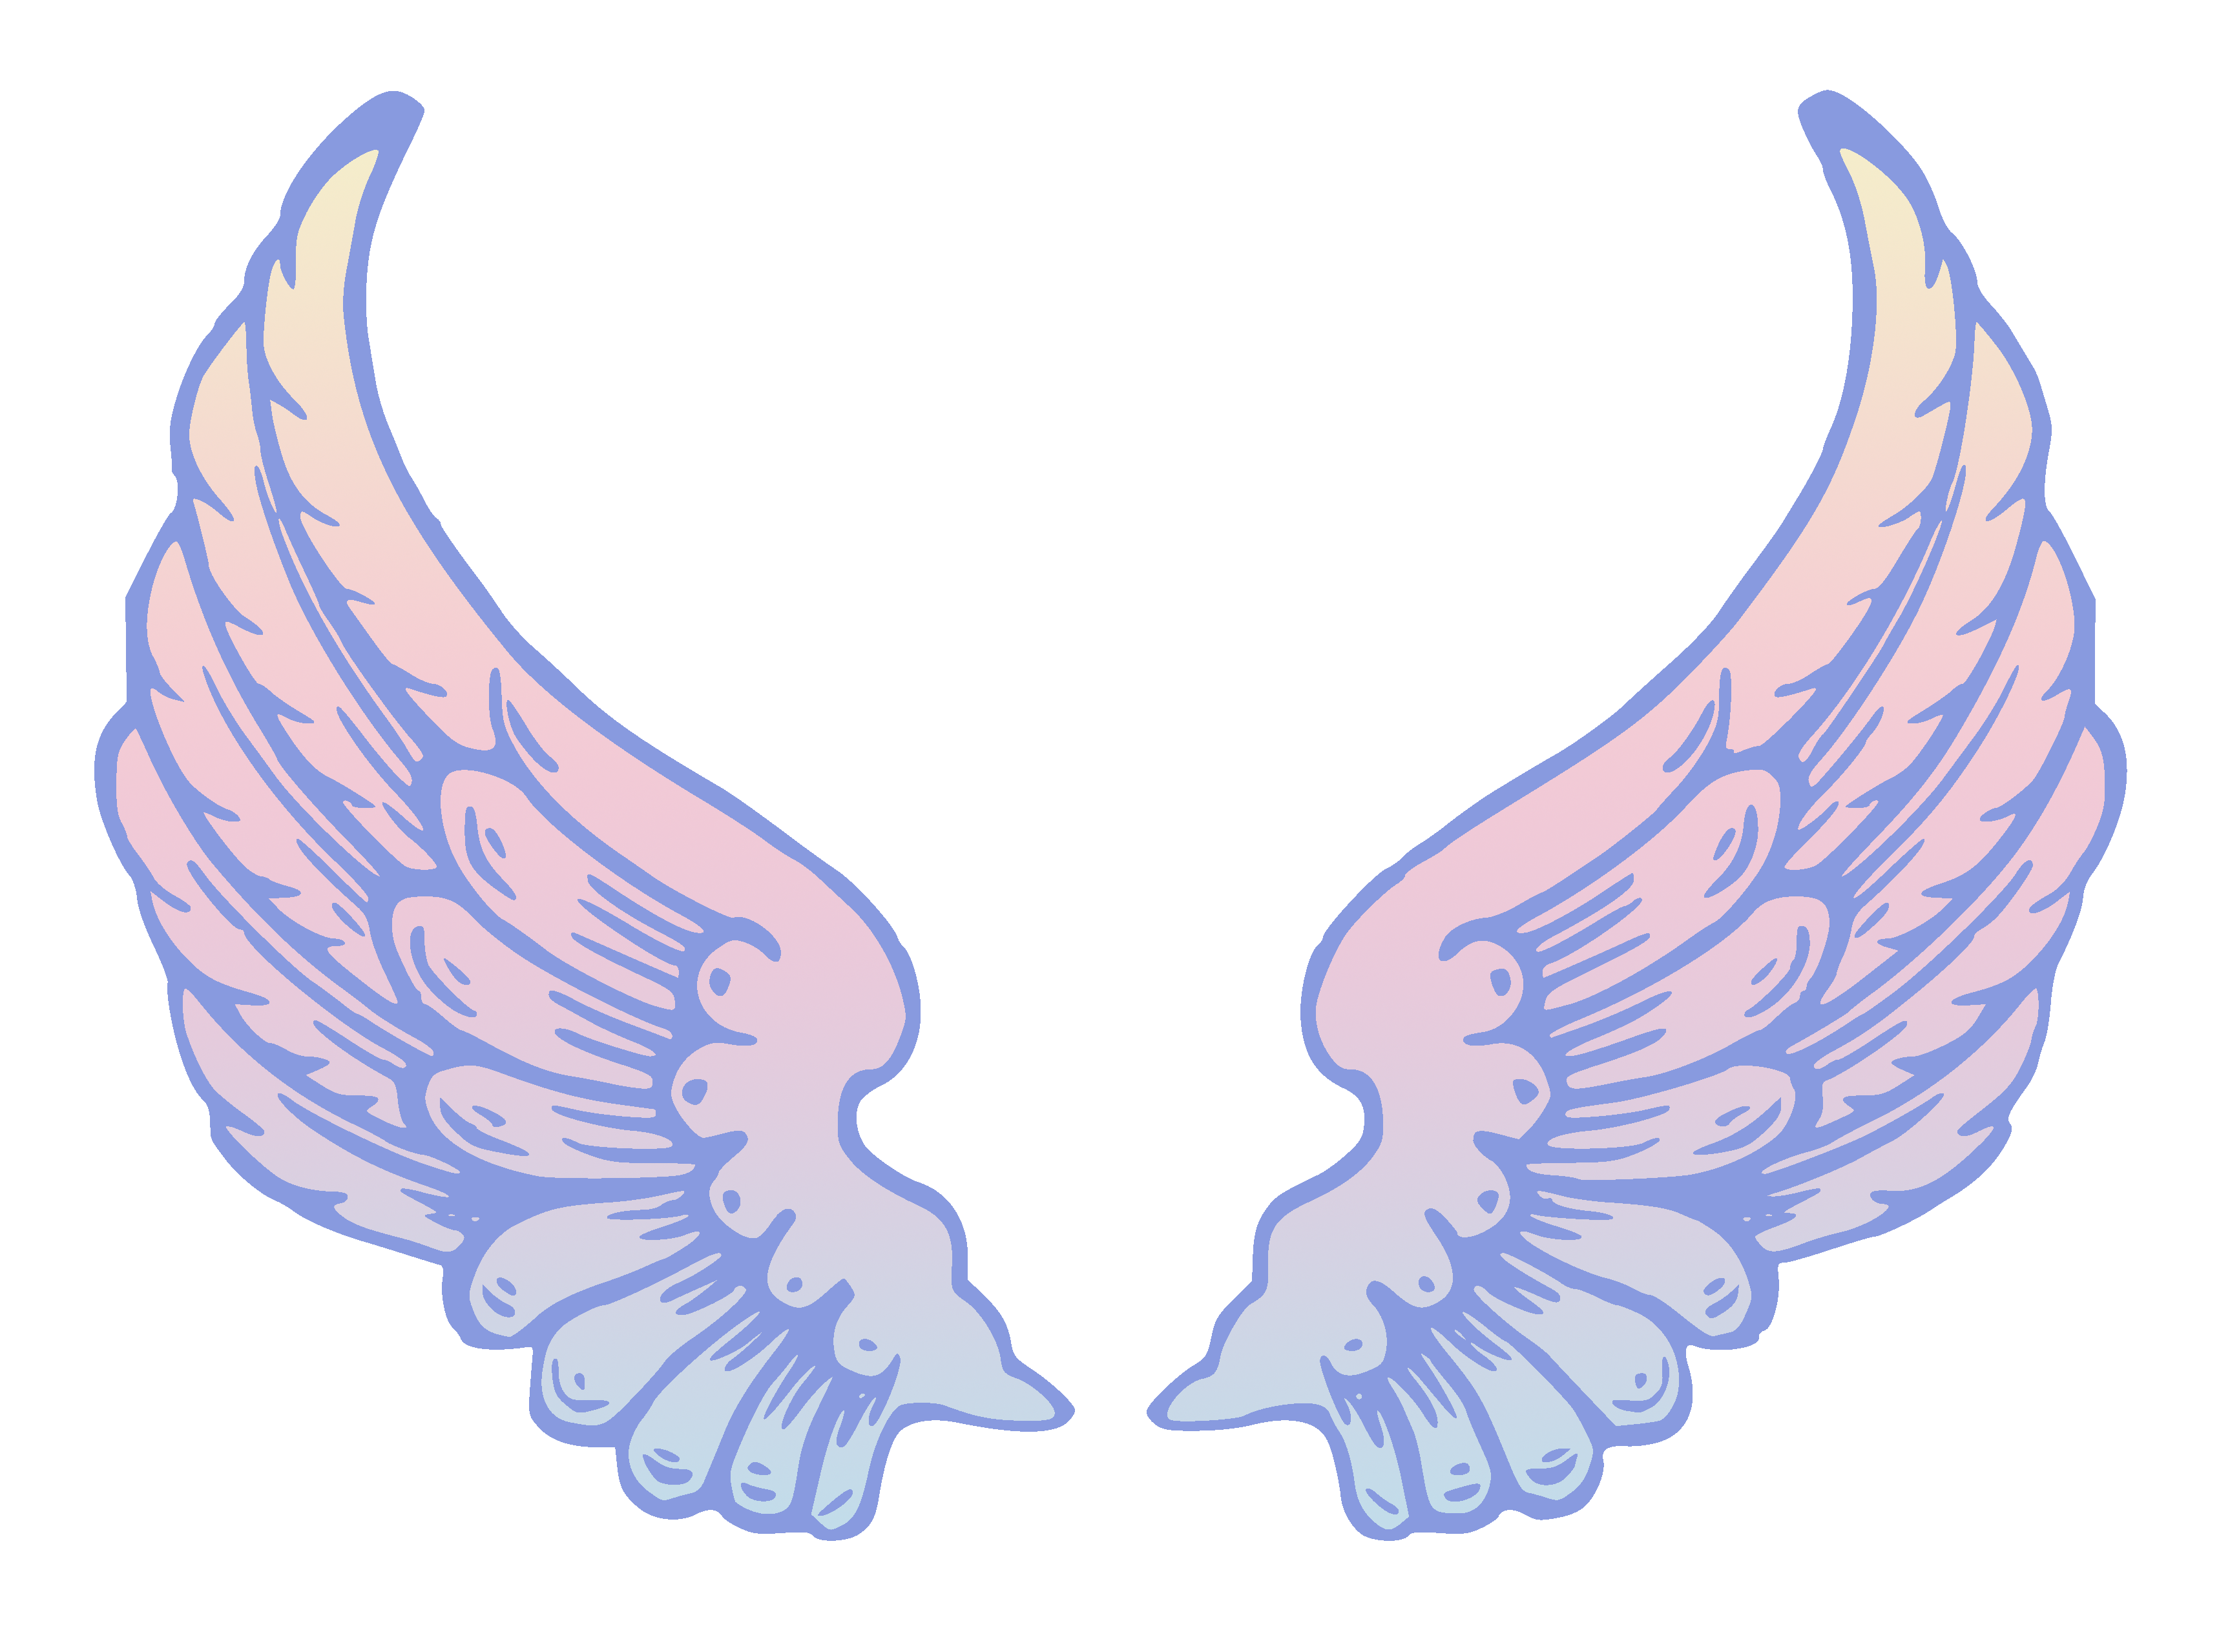 Lightwing co page octopus. Kawaii angel wings png banner royalty free library